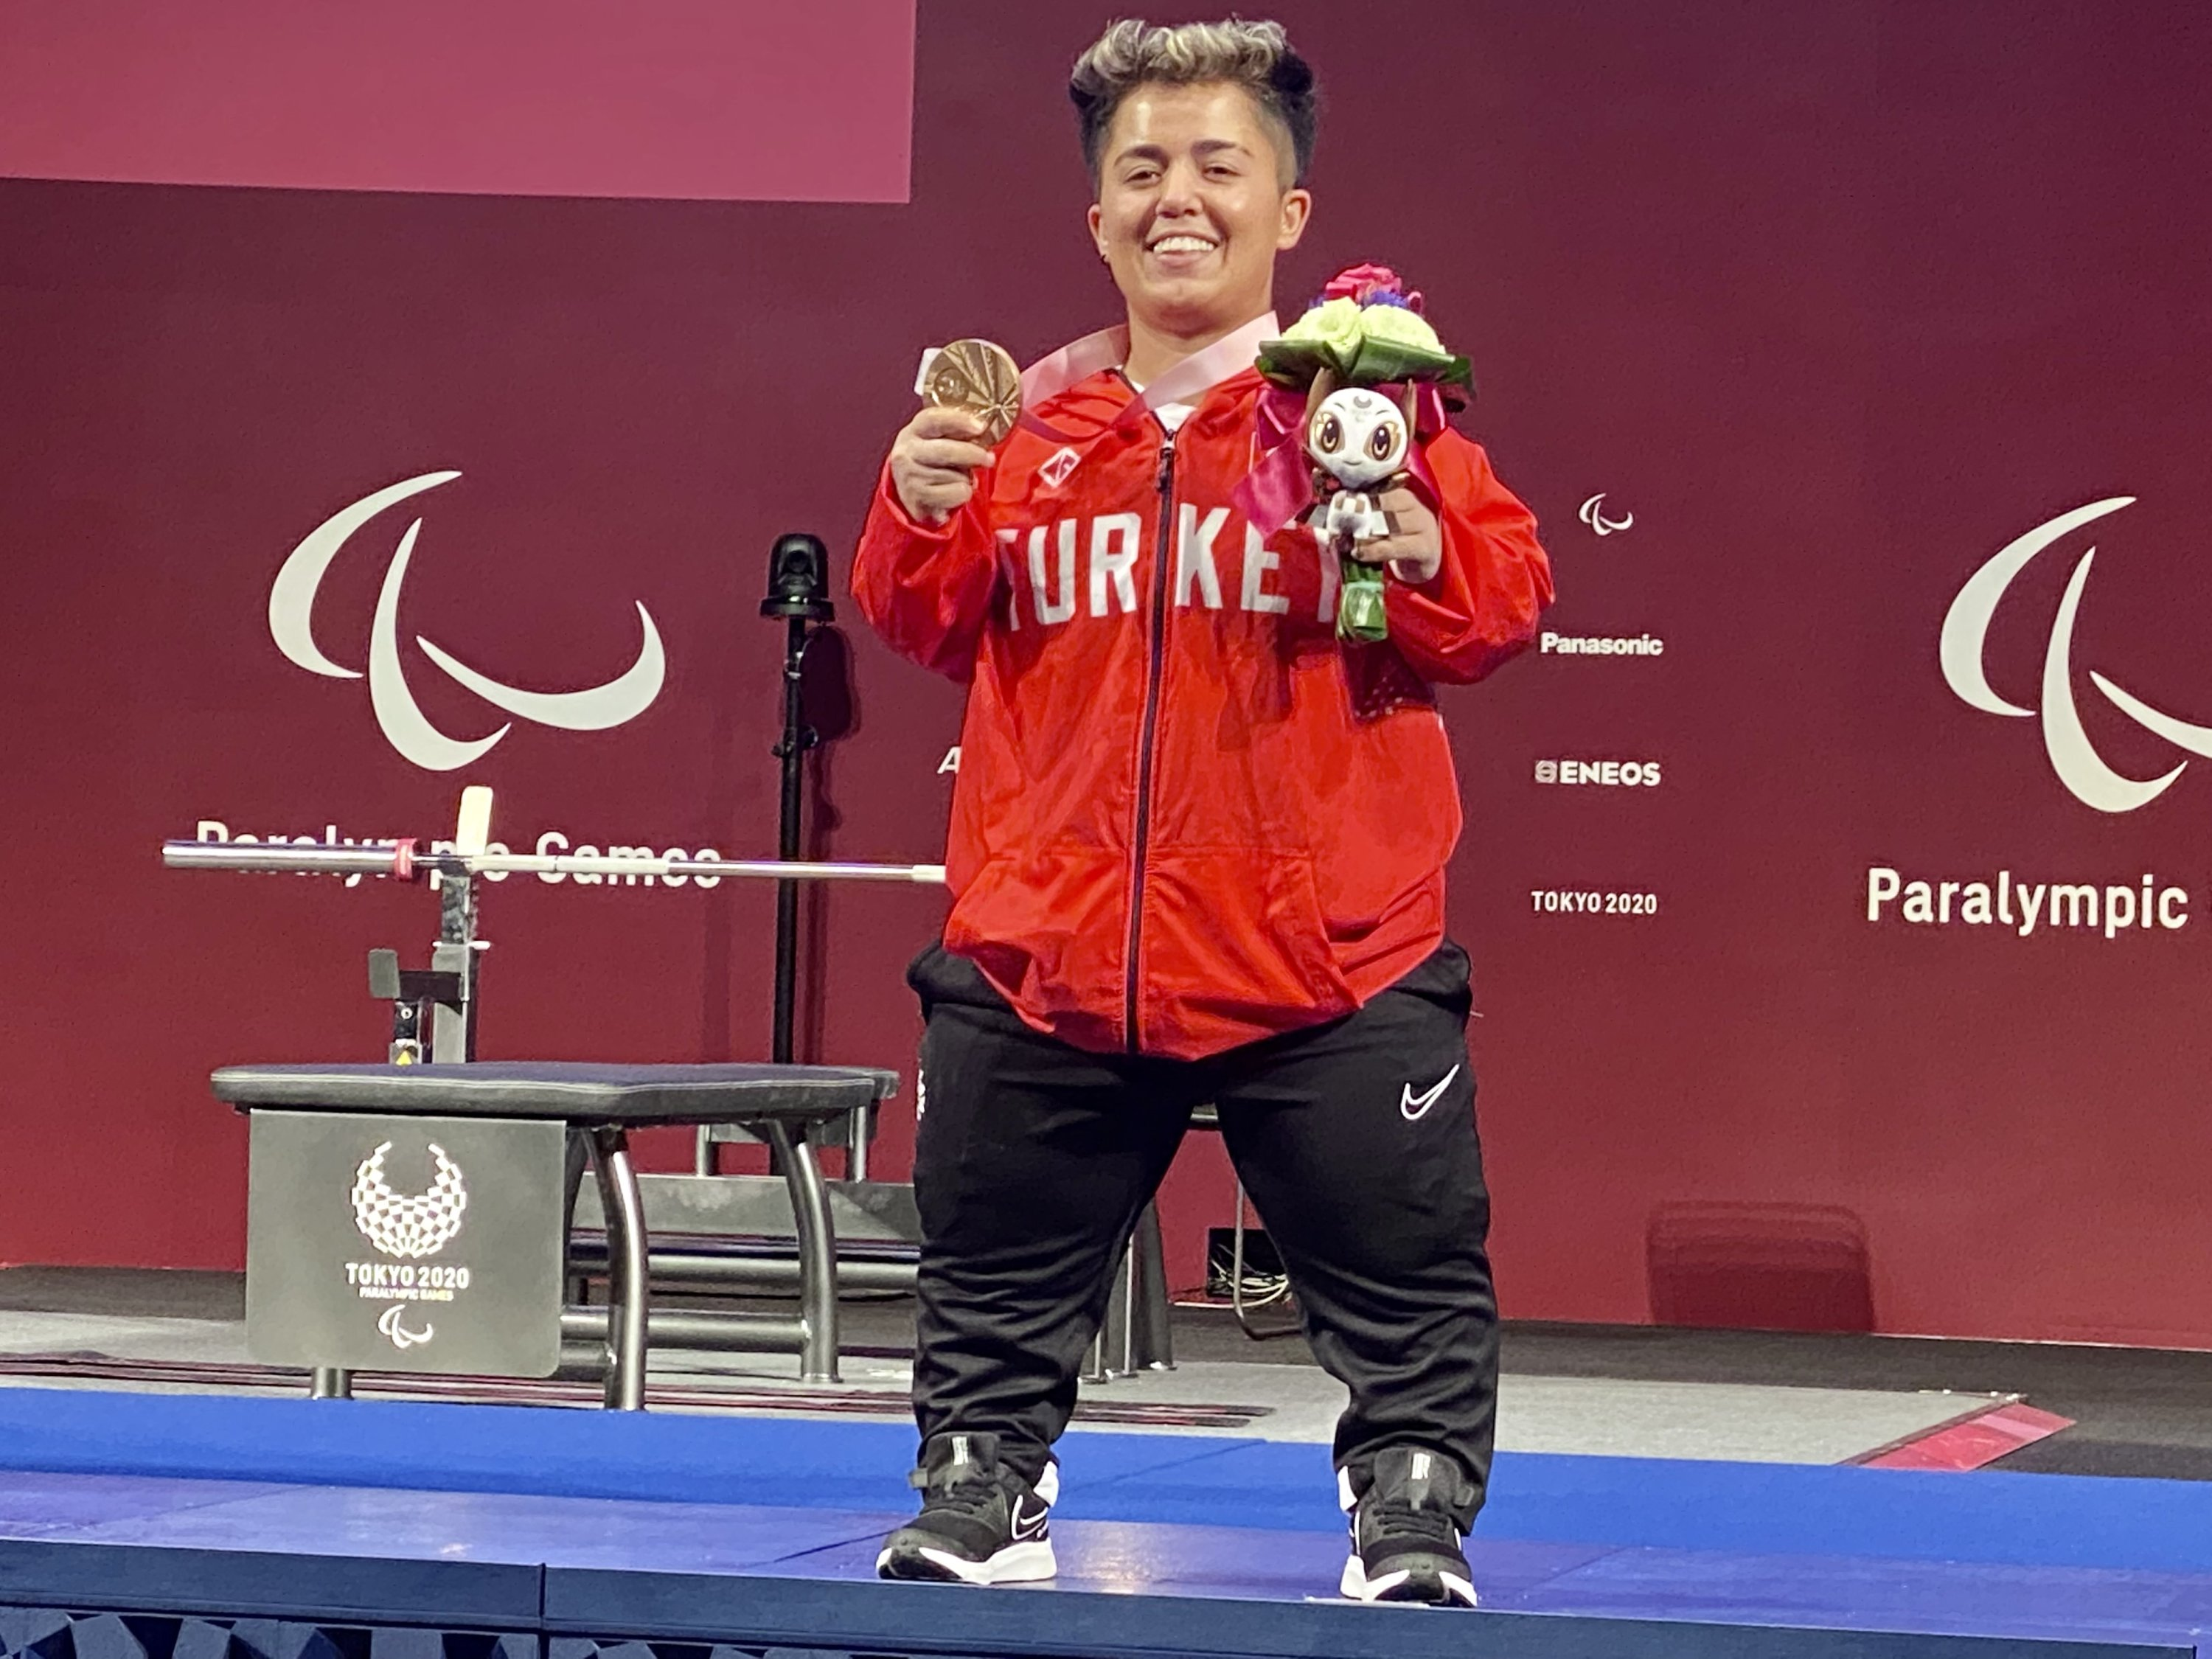 Turkish powerlifter Besra Duman poses for a photo with her bronze medal at the Tokyo 2020 Paralympics, in Tokyo, Japan, Aug. 27, 2021. (AA Photo)